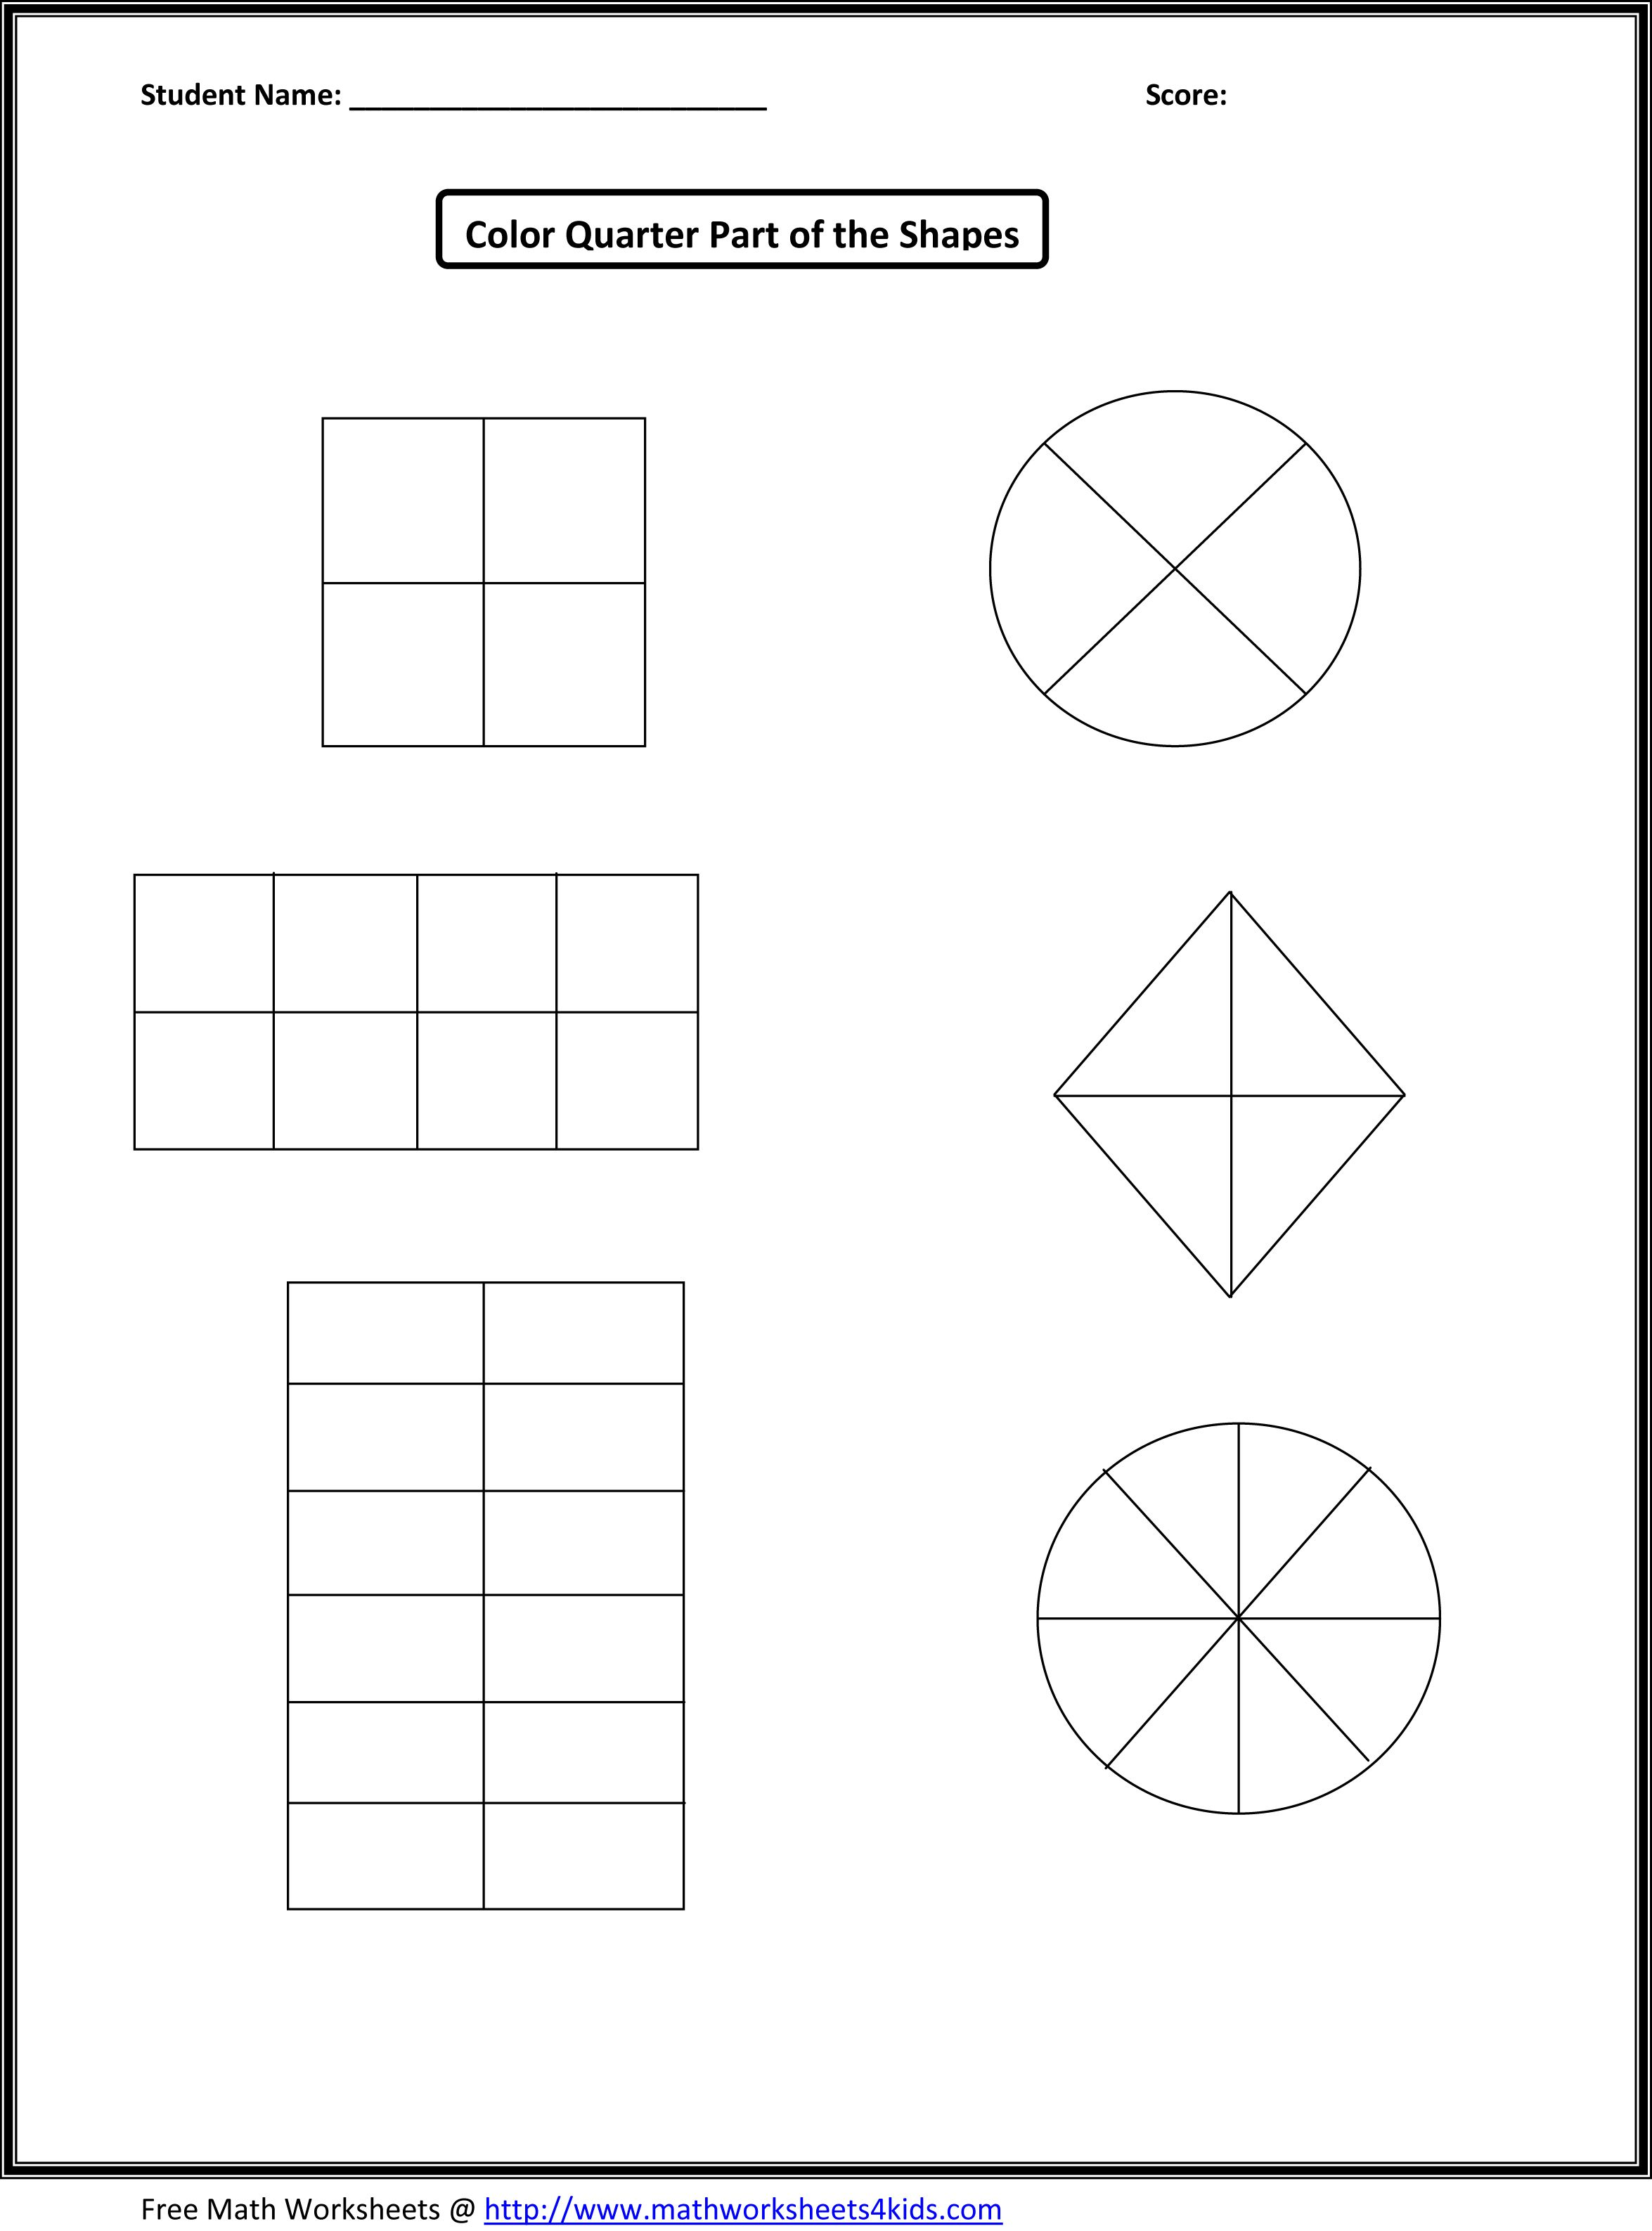 1000+ images about Fractions on Pinterest | First grade, Fractions ...1000+ images about Fractions on Pinterest | First grade, Fractions worksheets and Math worksheets